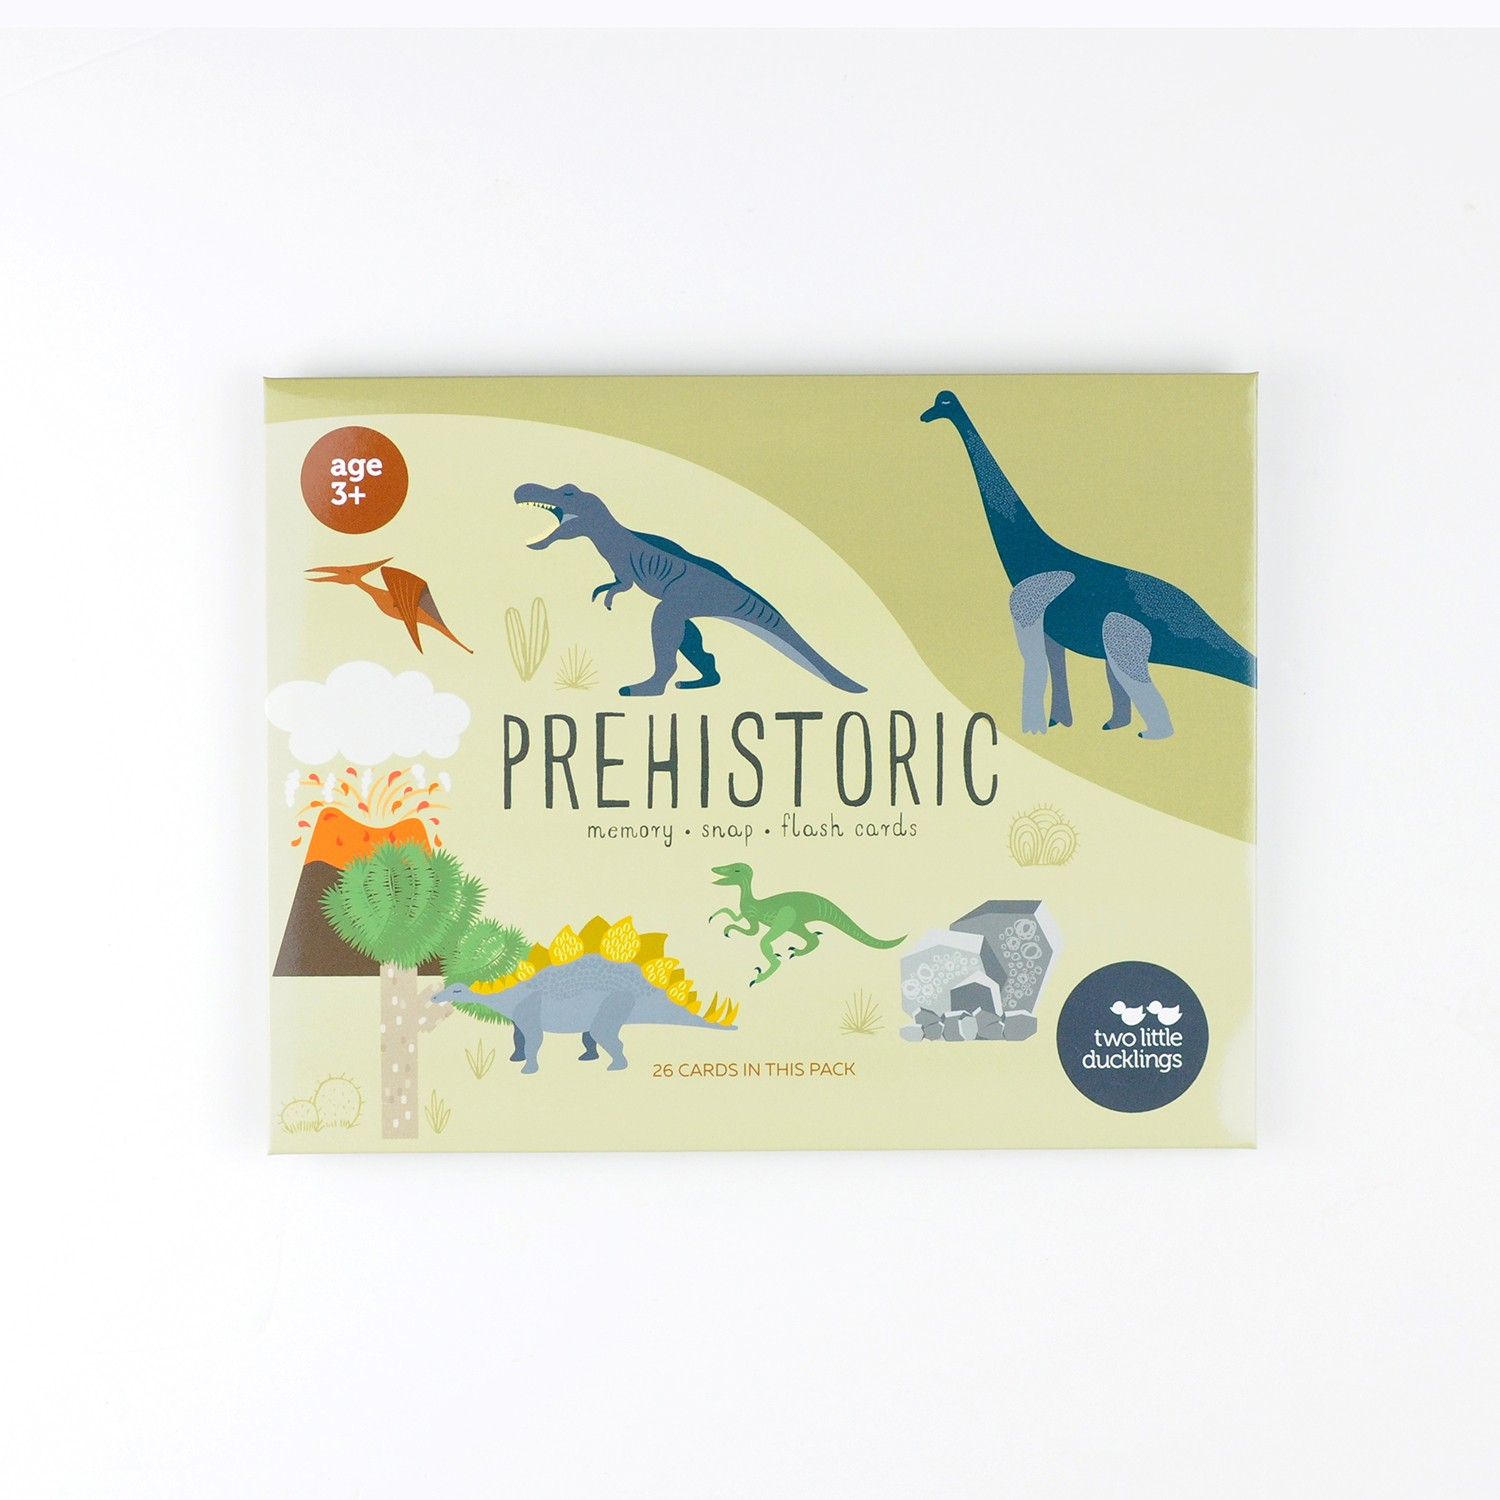 2LD Prehistoric Snap and Memory Game